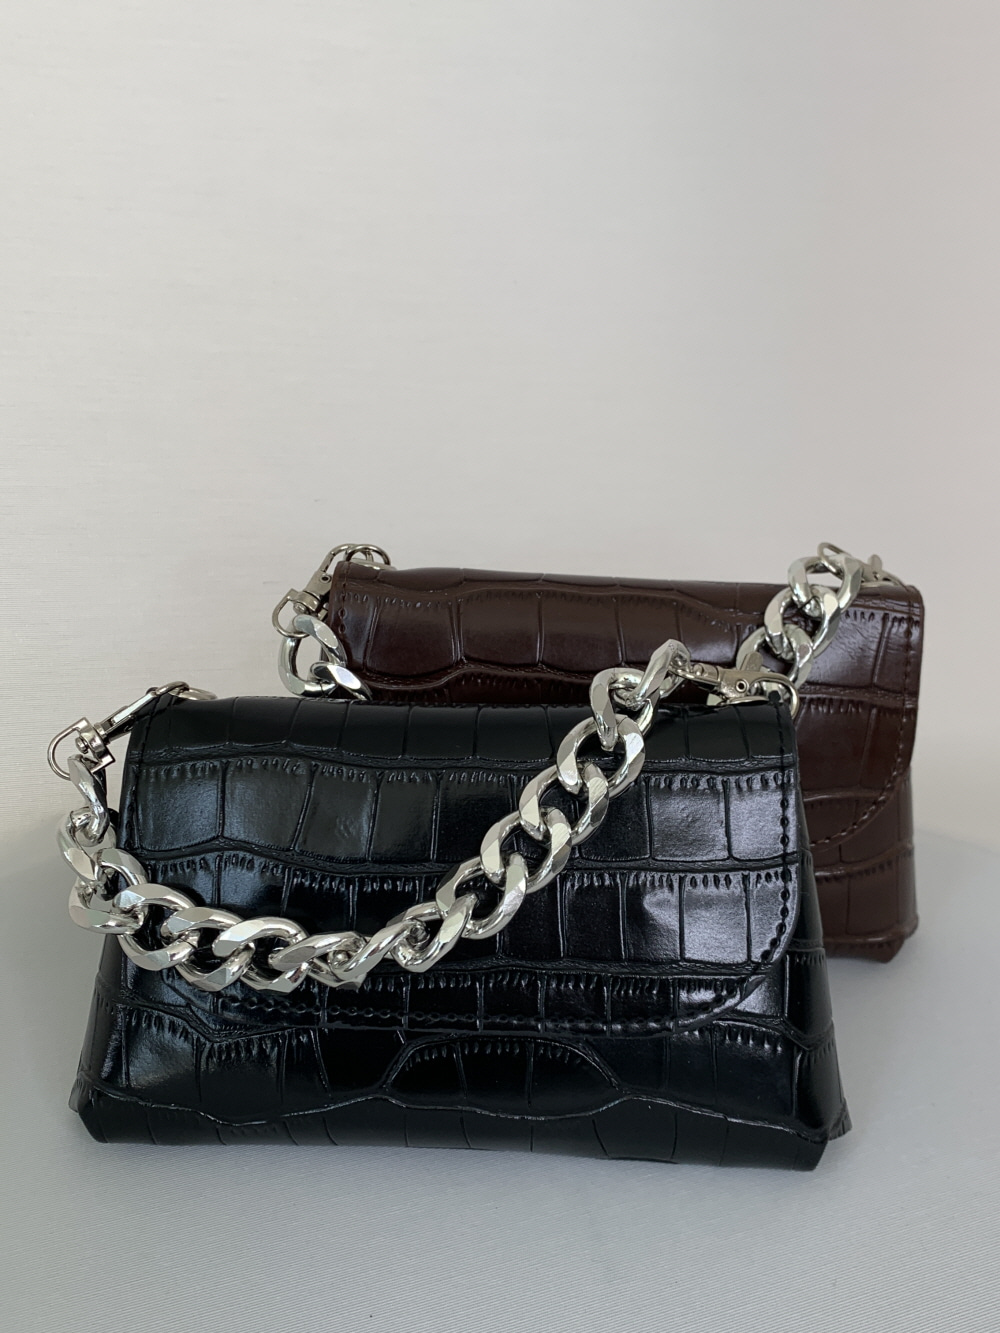 BELT CHAIN MINI-BAG